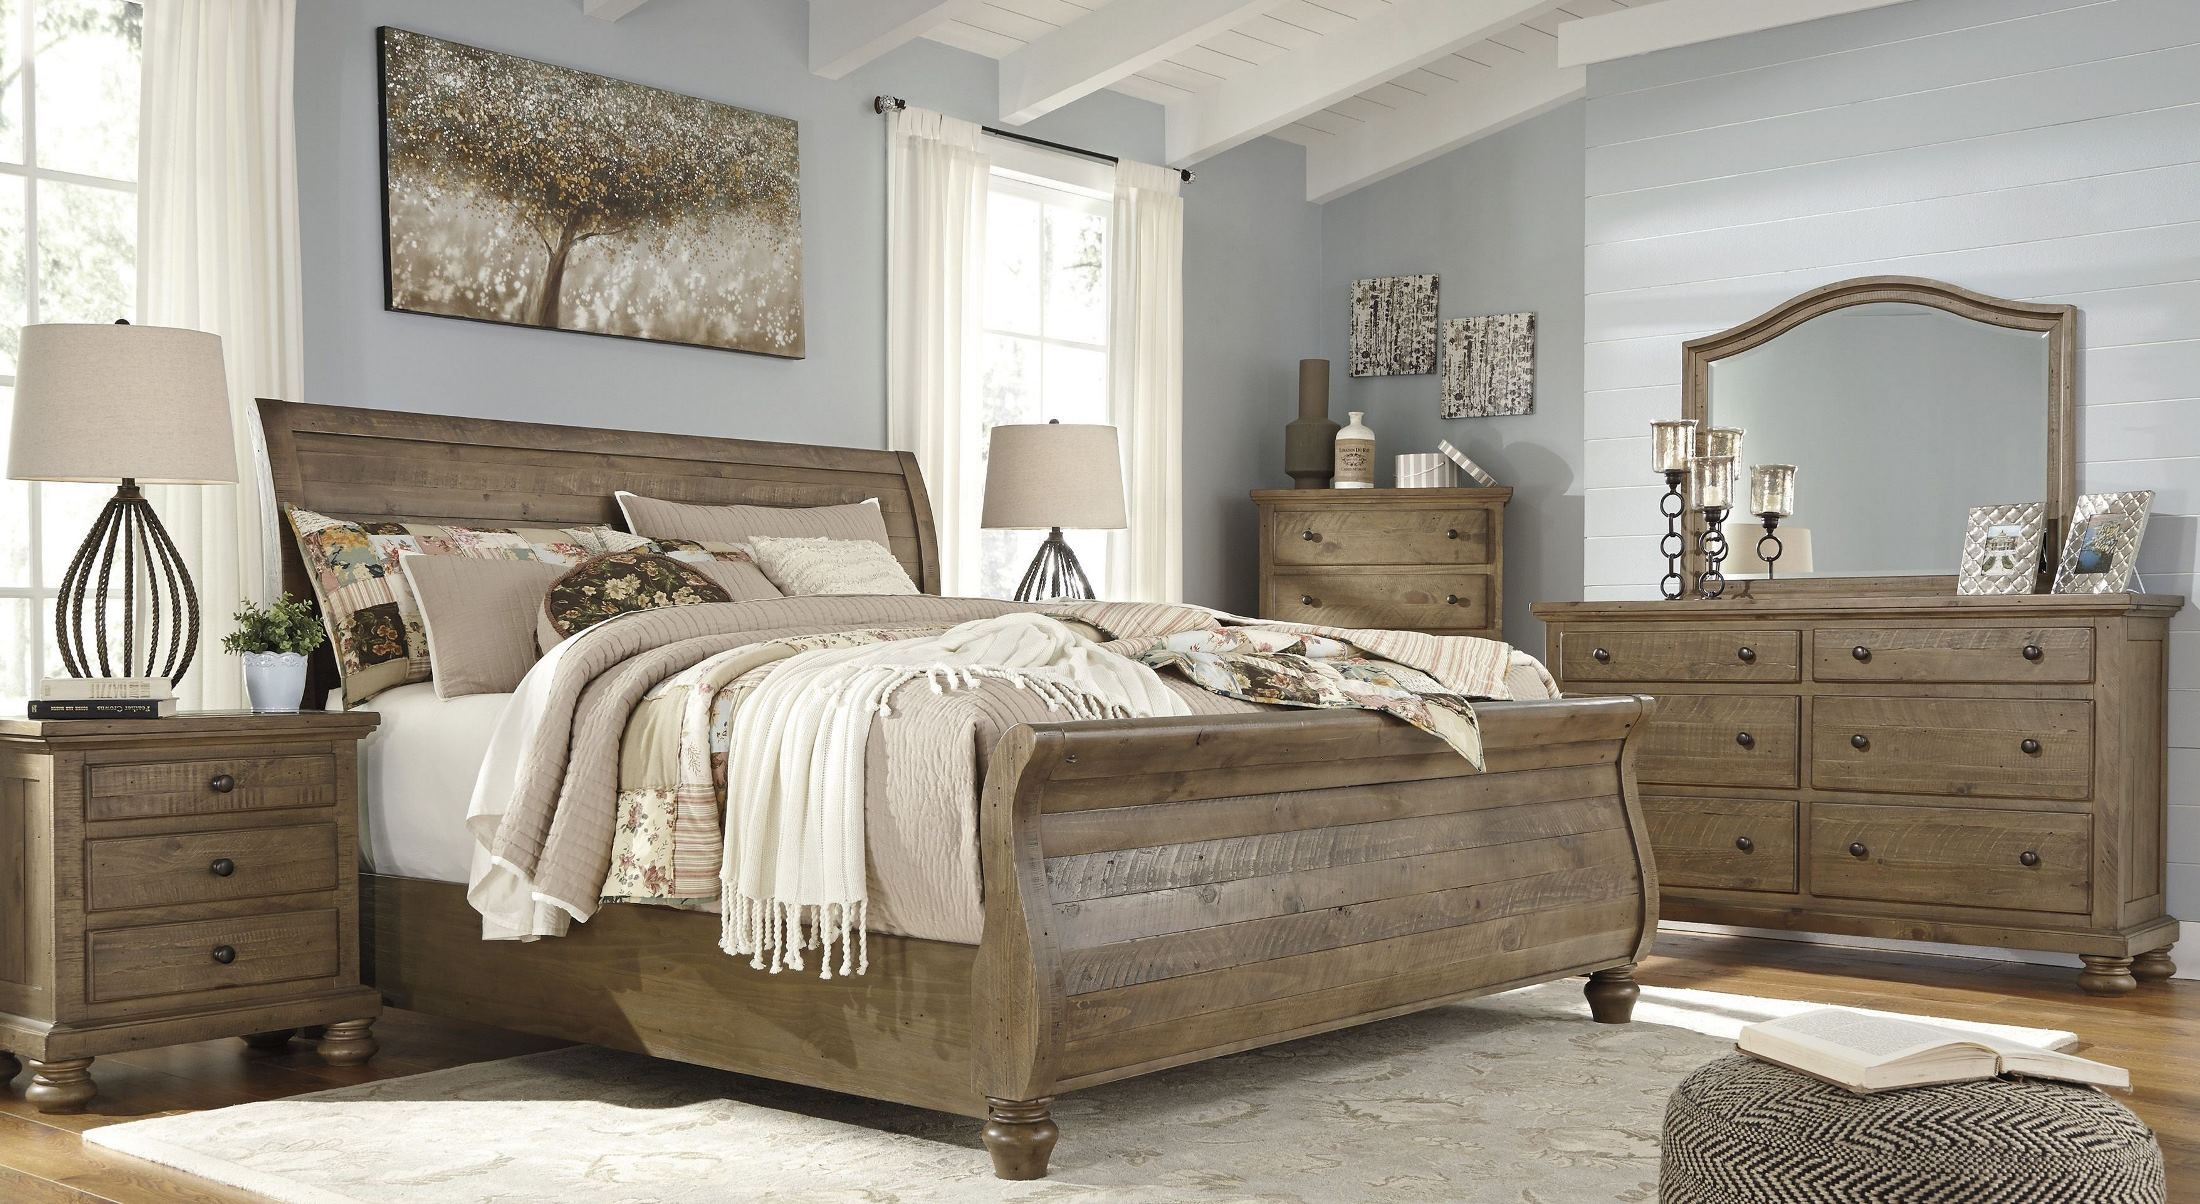 Trishley light brown sleigh bedroom set b659 77 74 98 ashley for Brown bedroom sets